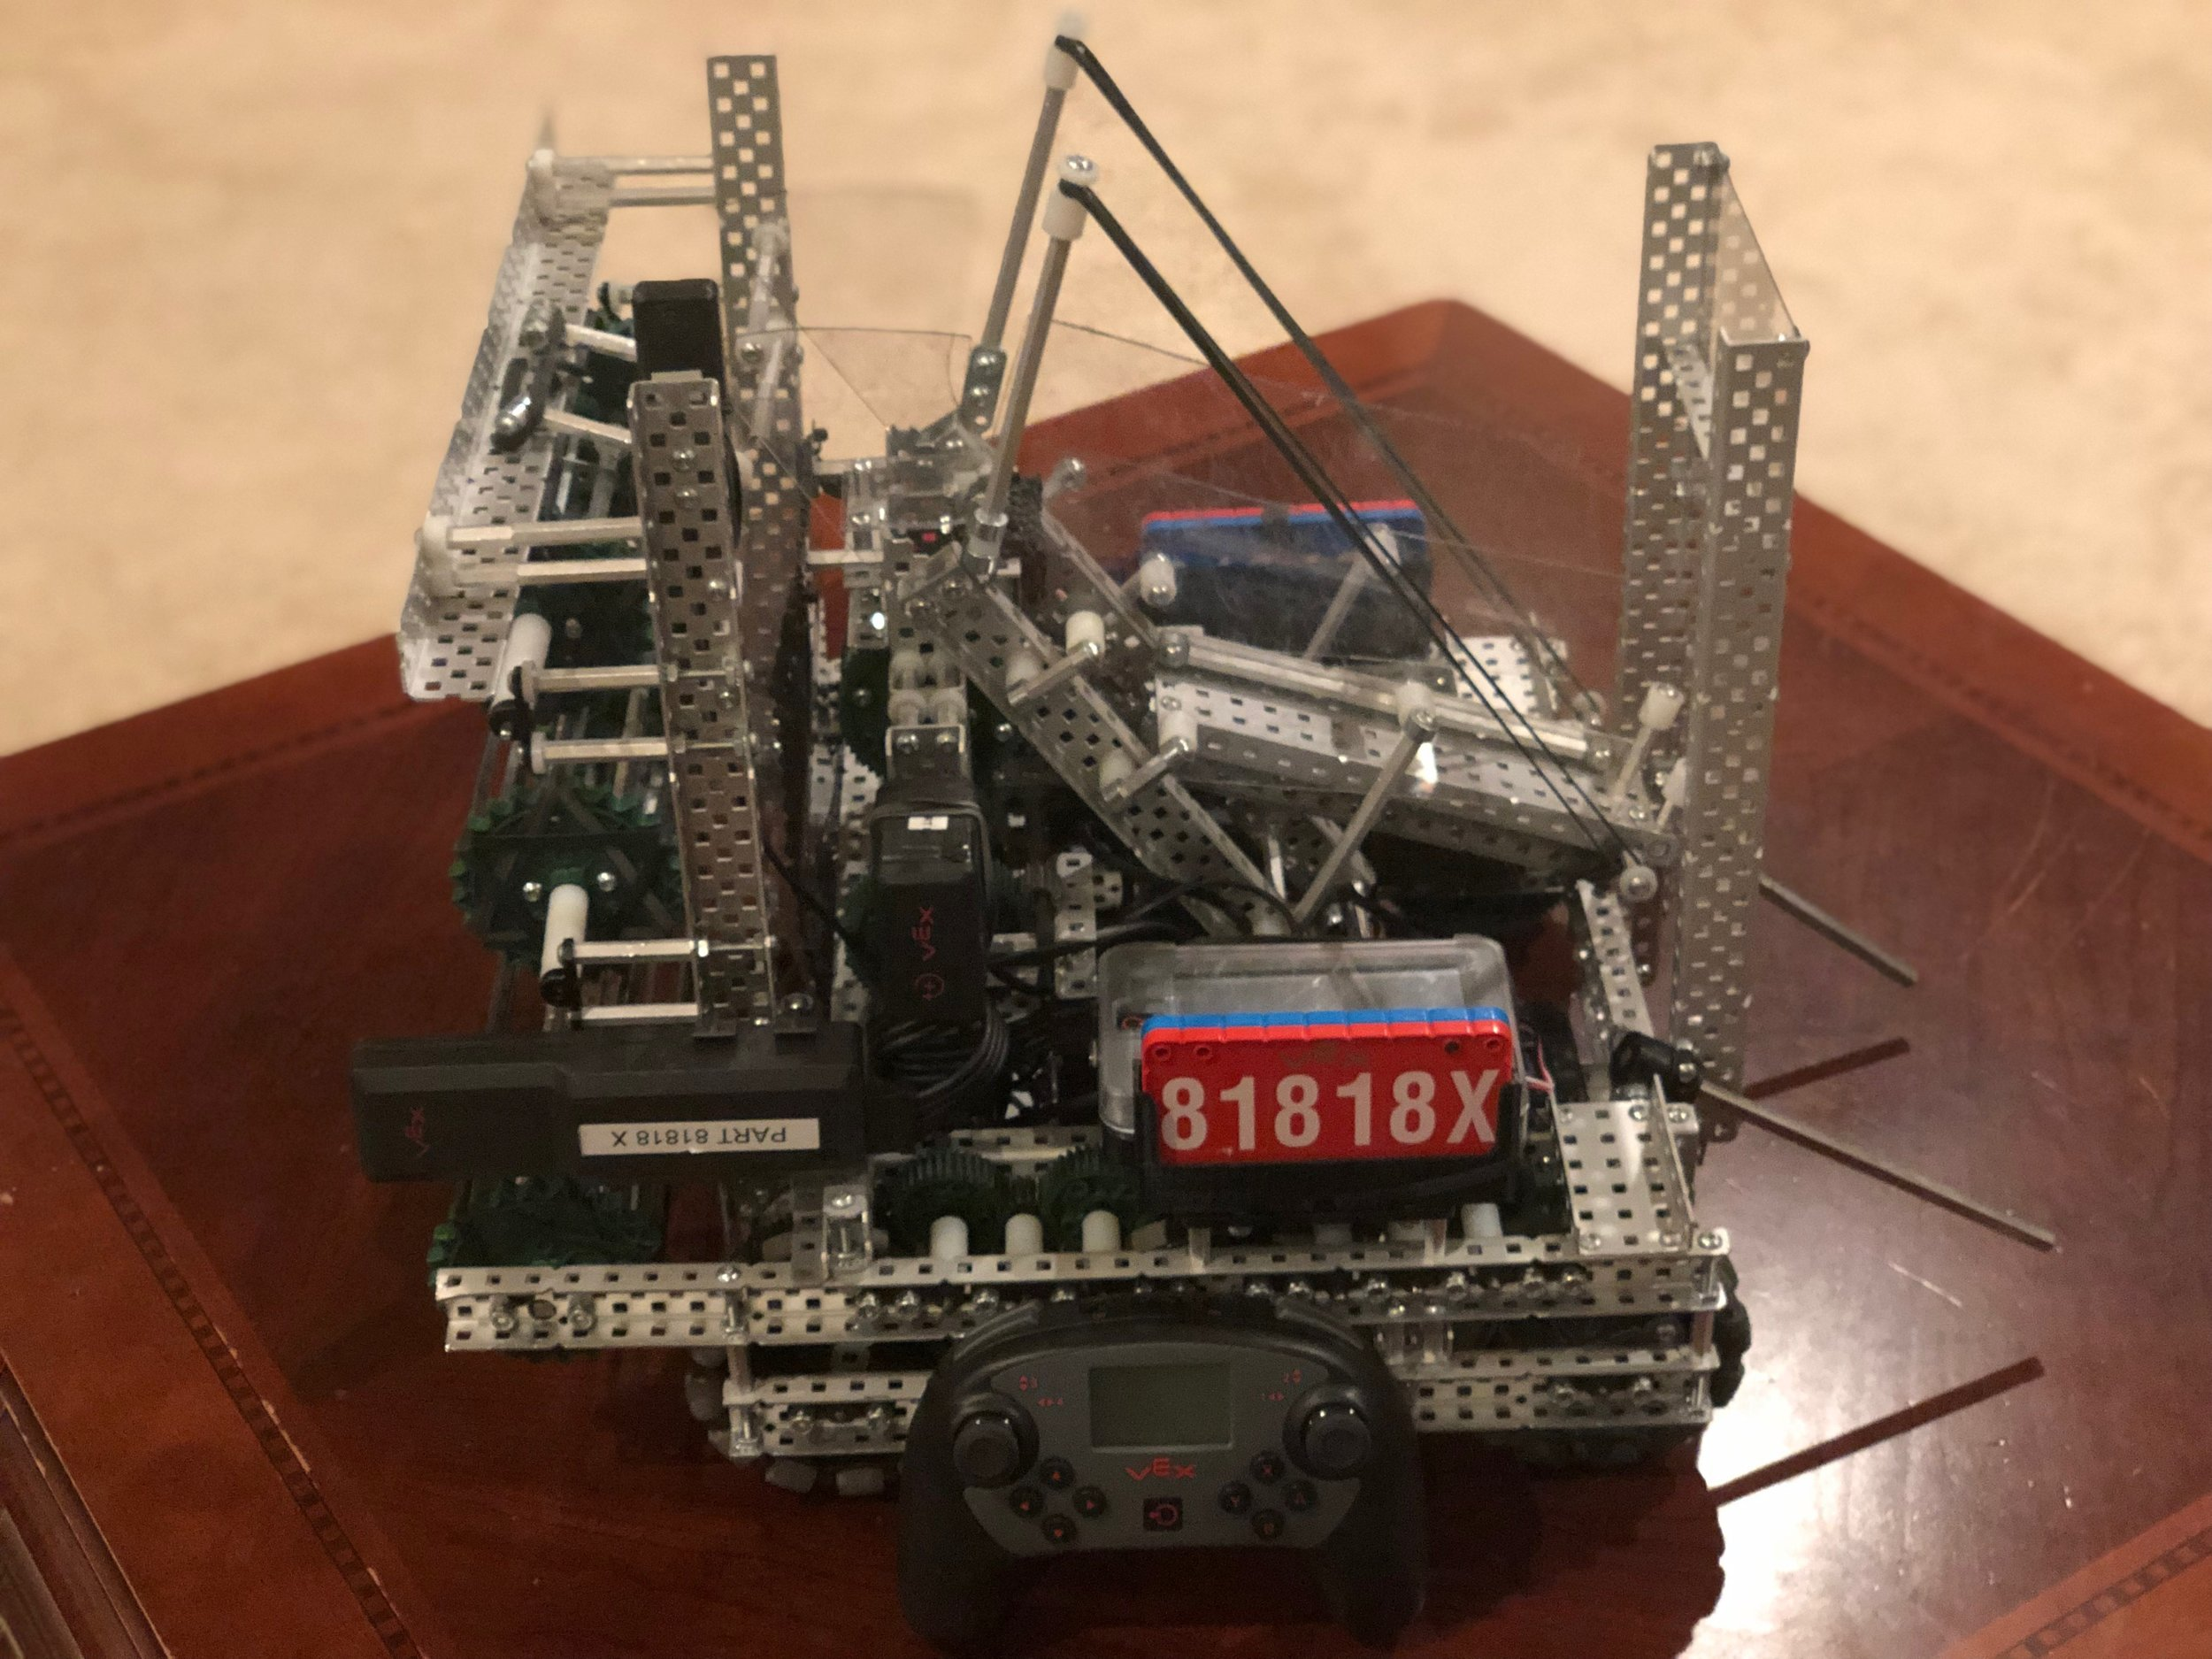 81818X Turning Point Build Award Winner! What will your robot look like?